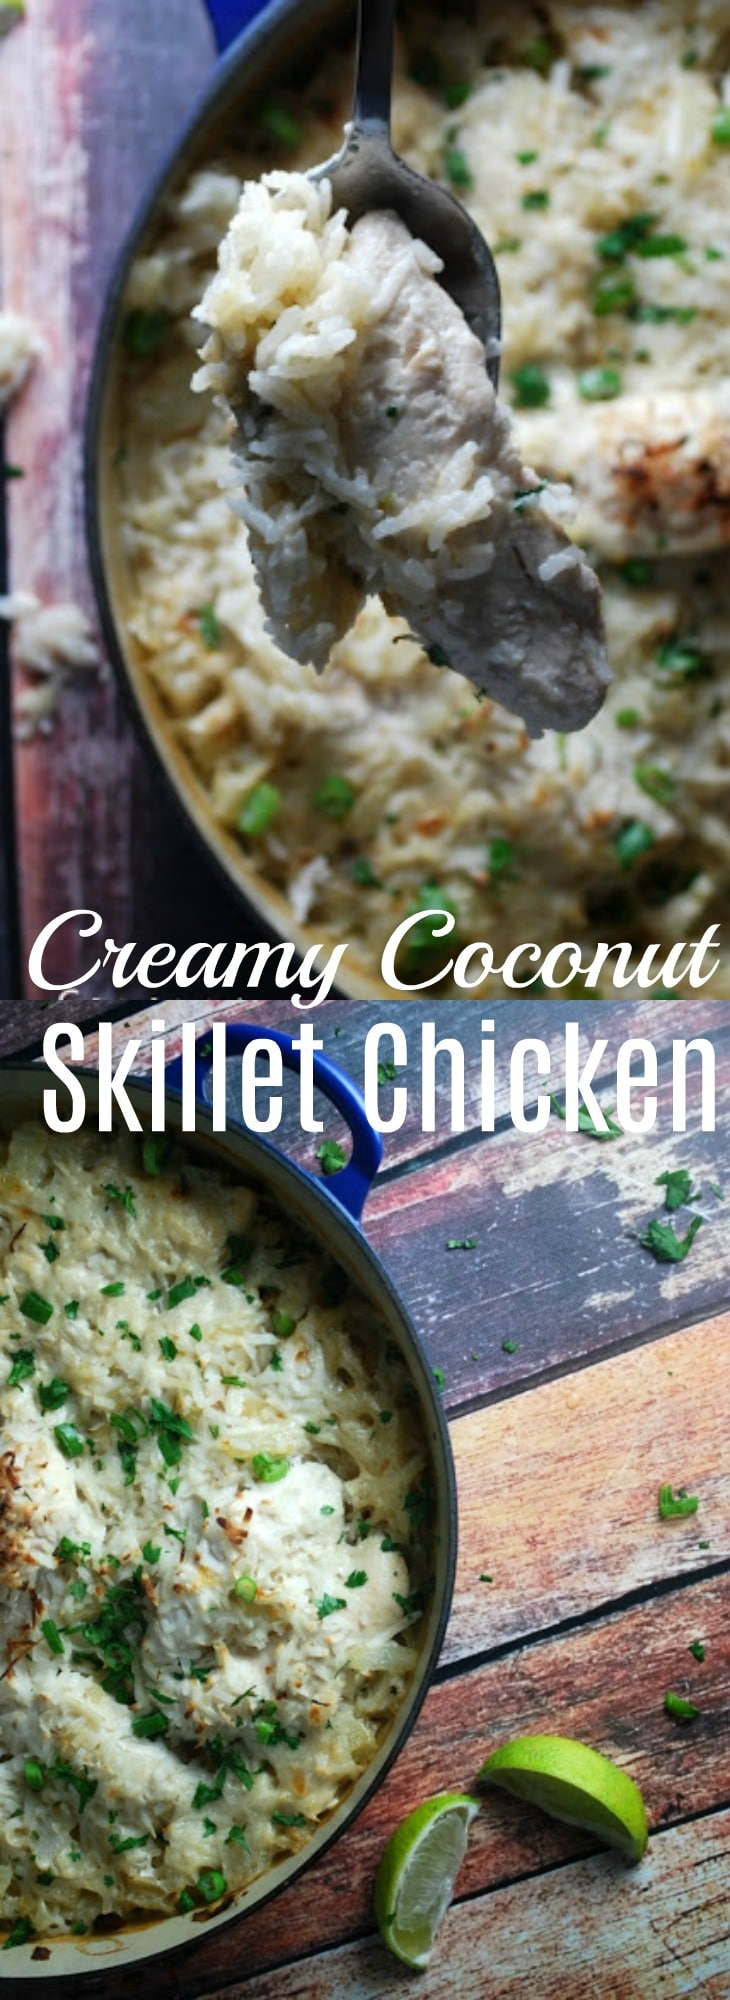 This skillet Coconut Chicken is a perfect weeknight meal. Just 30 minutes worth of work, real ingredients, and and a taste kids actually like!